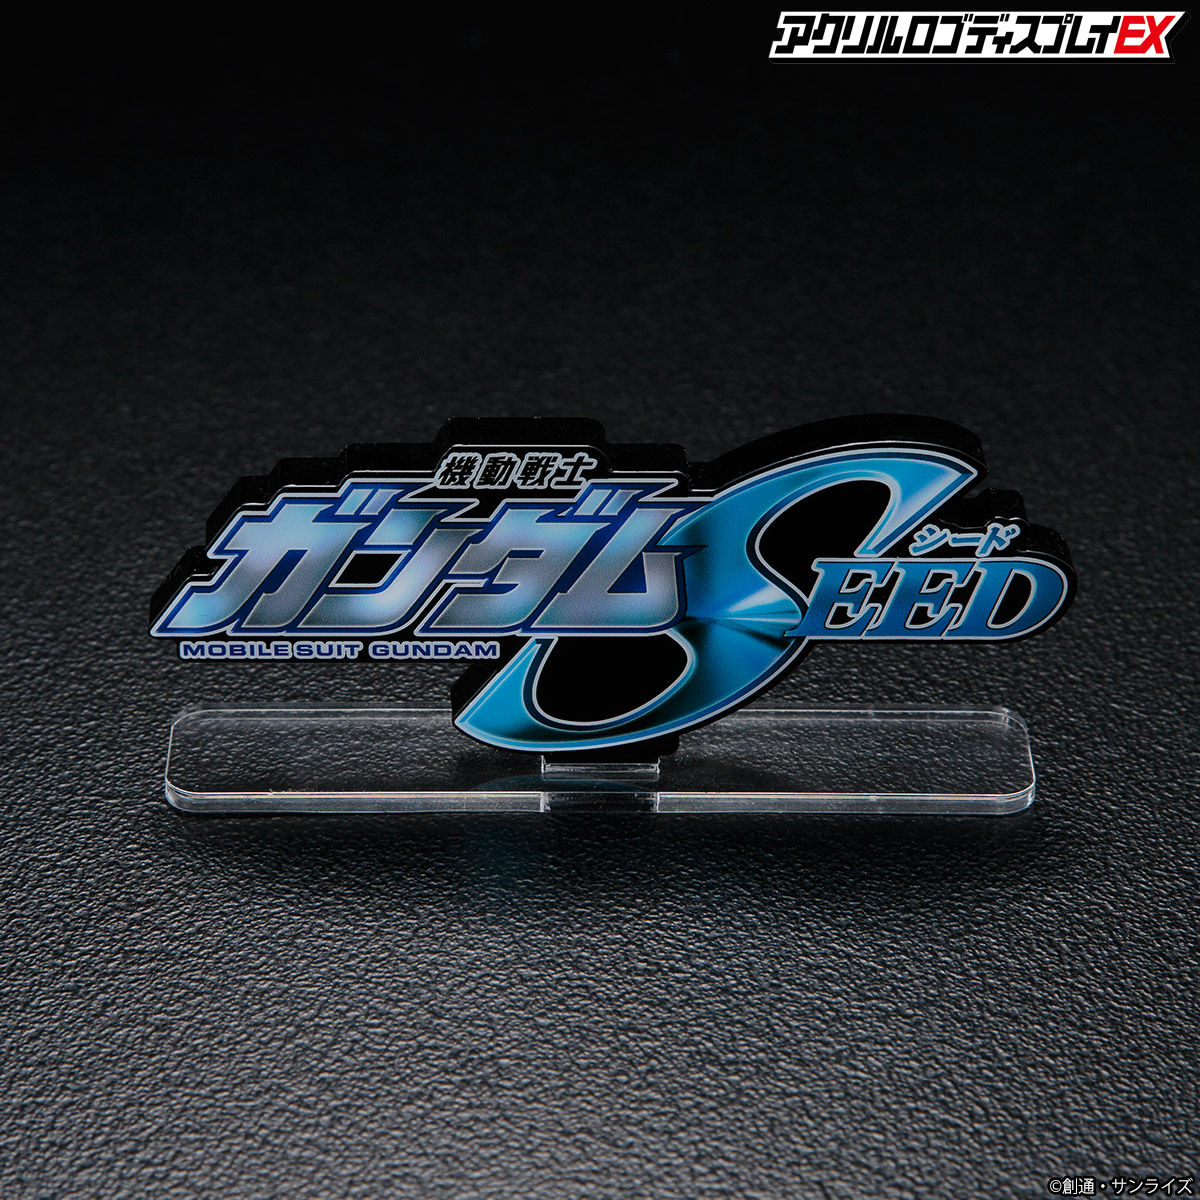 Acrylic Logo Display EX Mobile Suit Gundam SEED